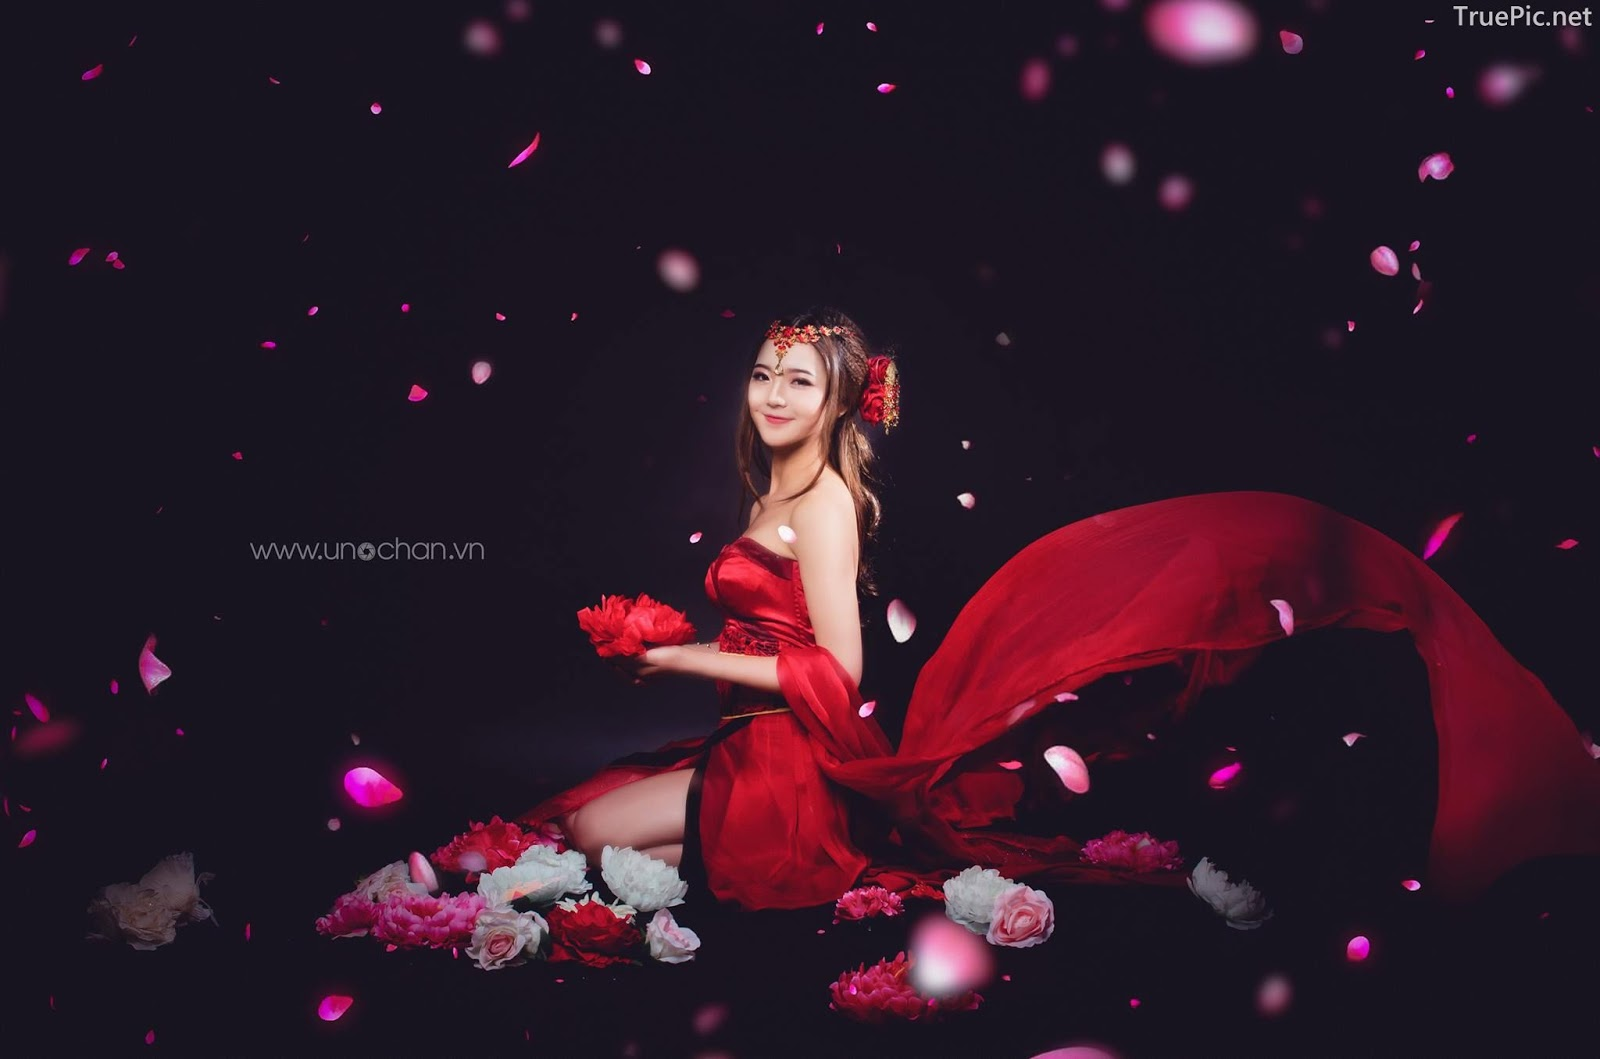 Vietnamese beautiful model Le Thu Huong - Cosplay mobile game character - Photo by Uno Chan - Picture 8